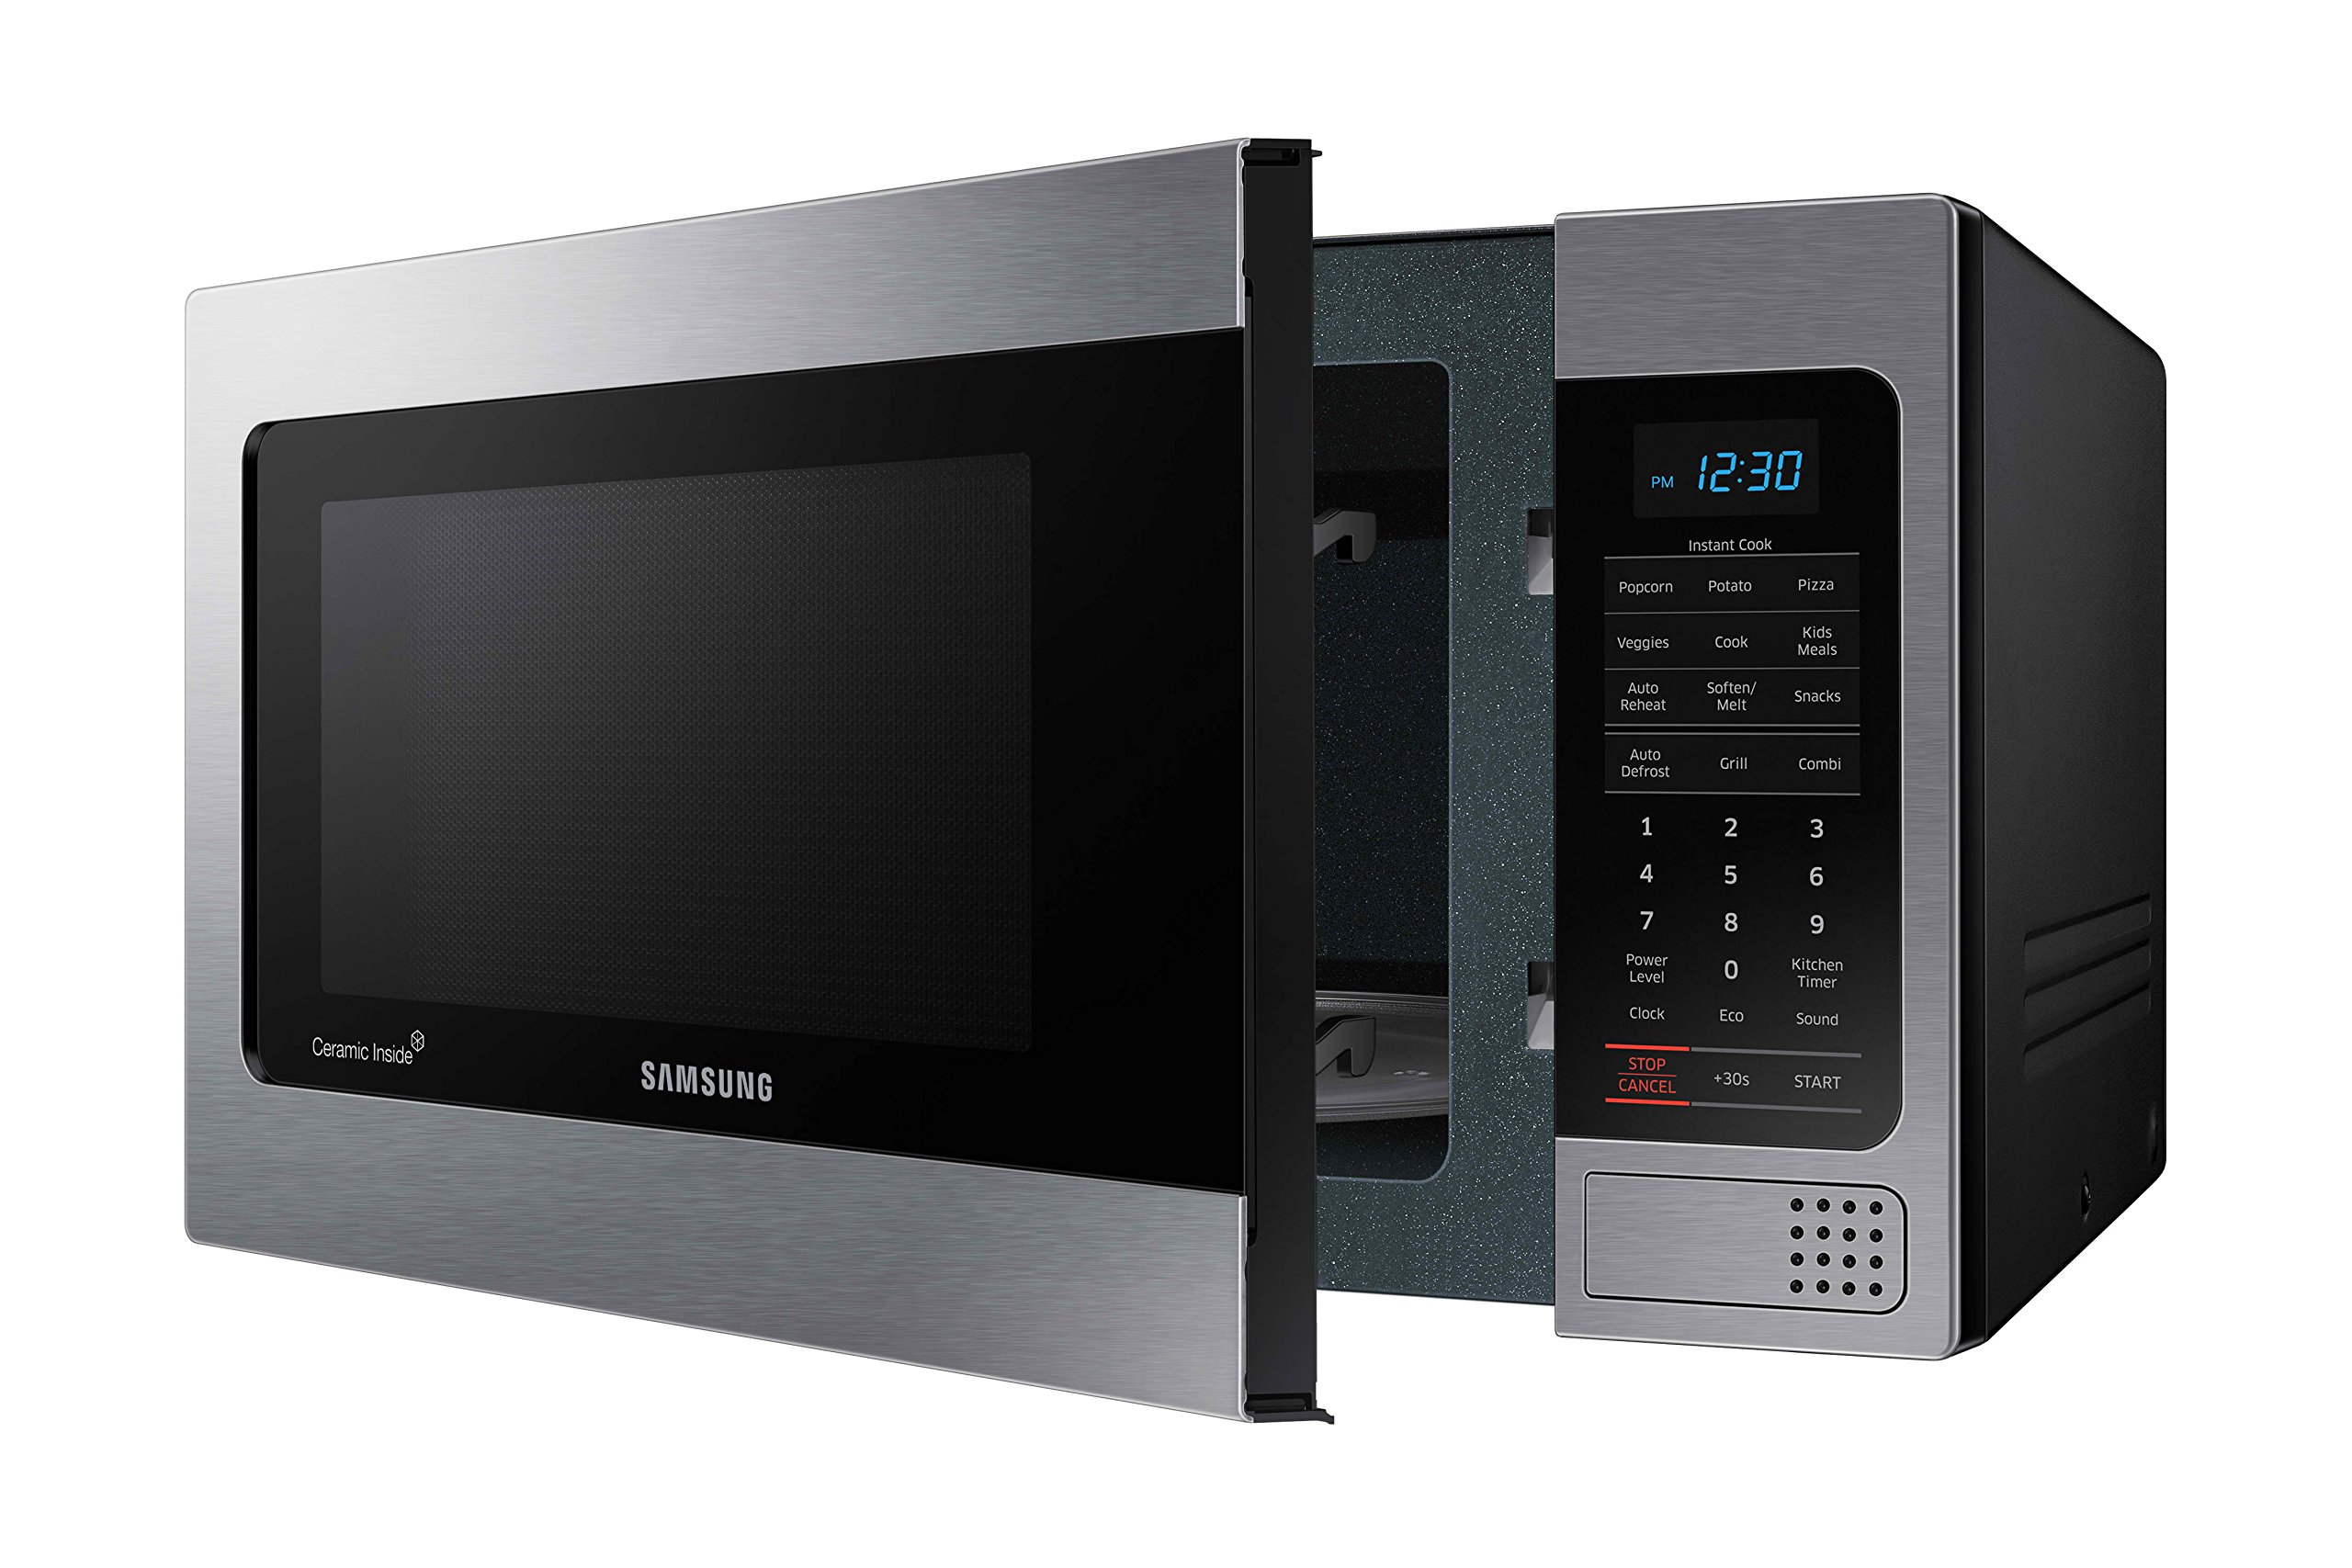 Samsung Mg11h2020ct 1 1 Cu Ft Countertop Grill Microwave